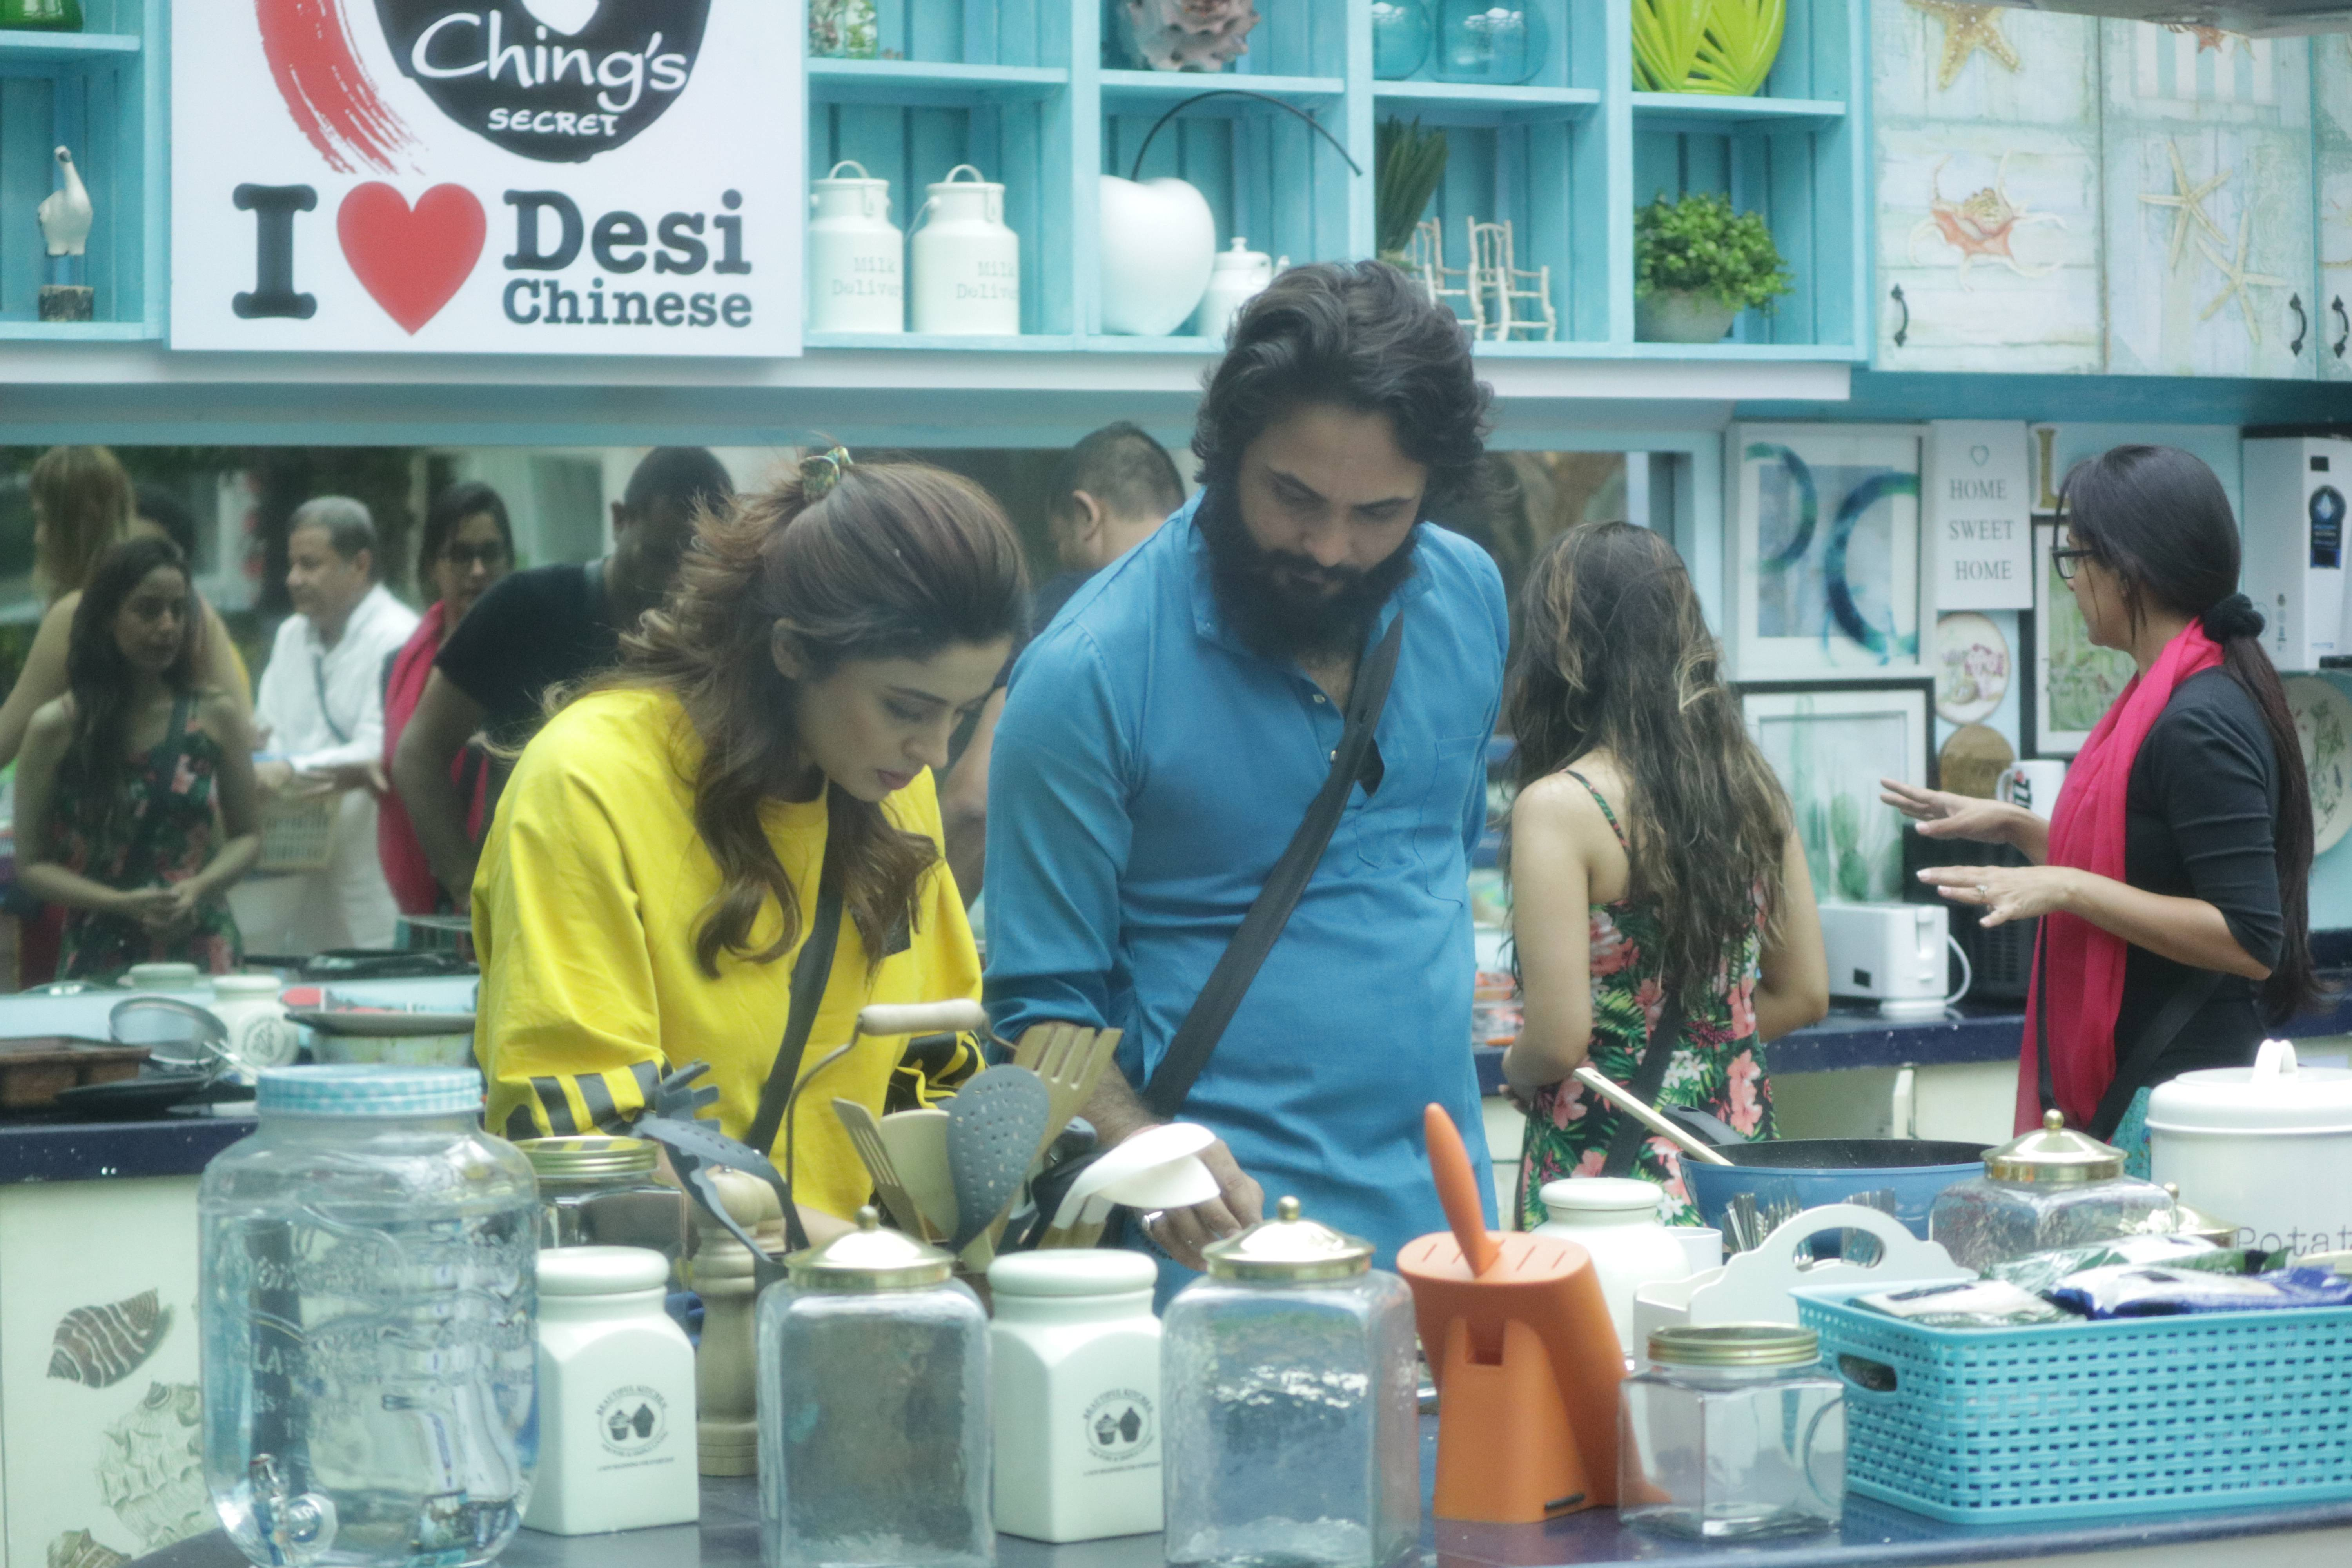 Here's summing up Day 1 in the Bigg Boss House